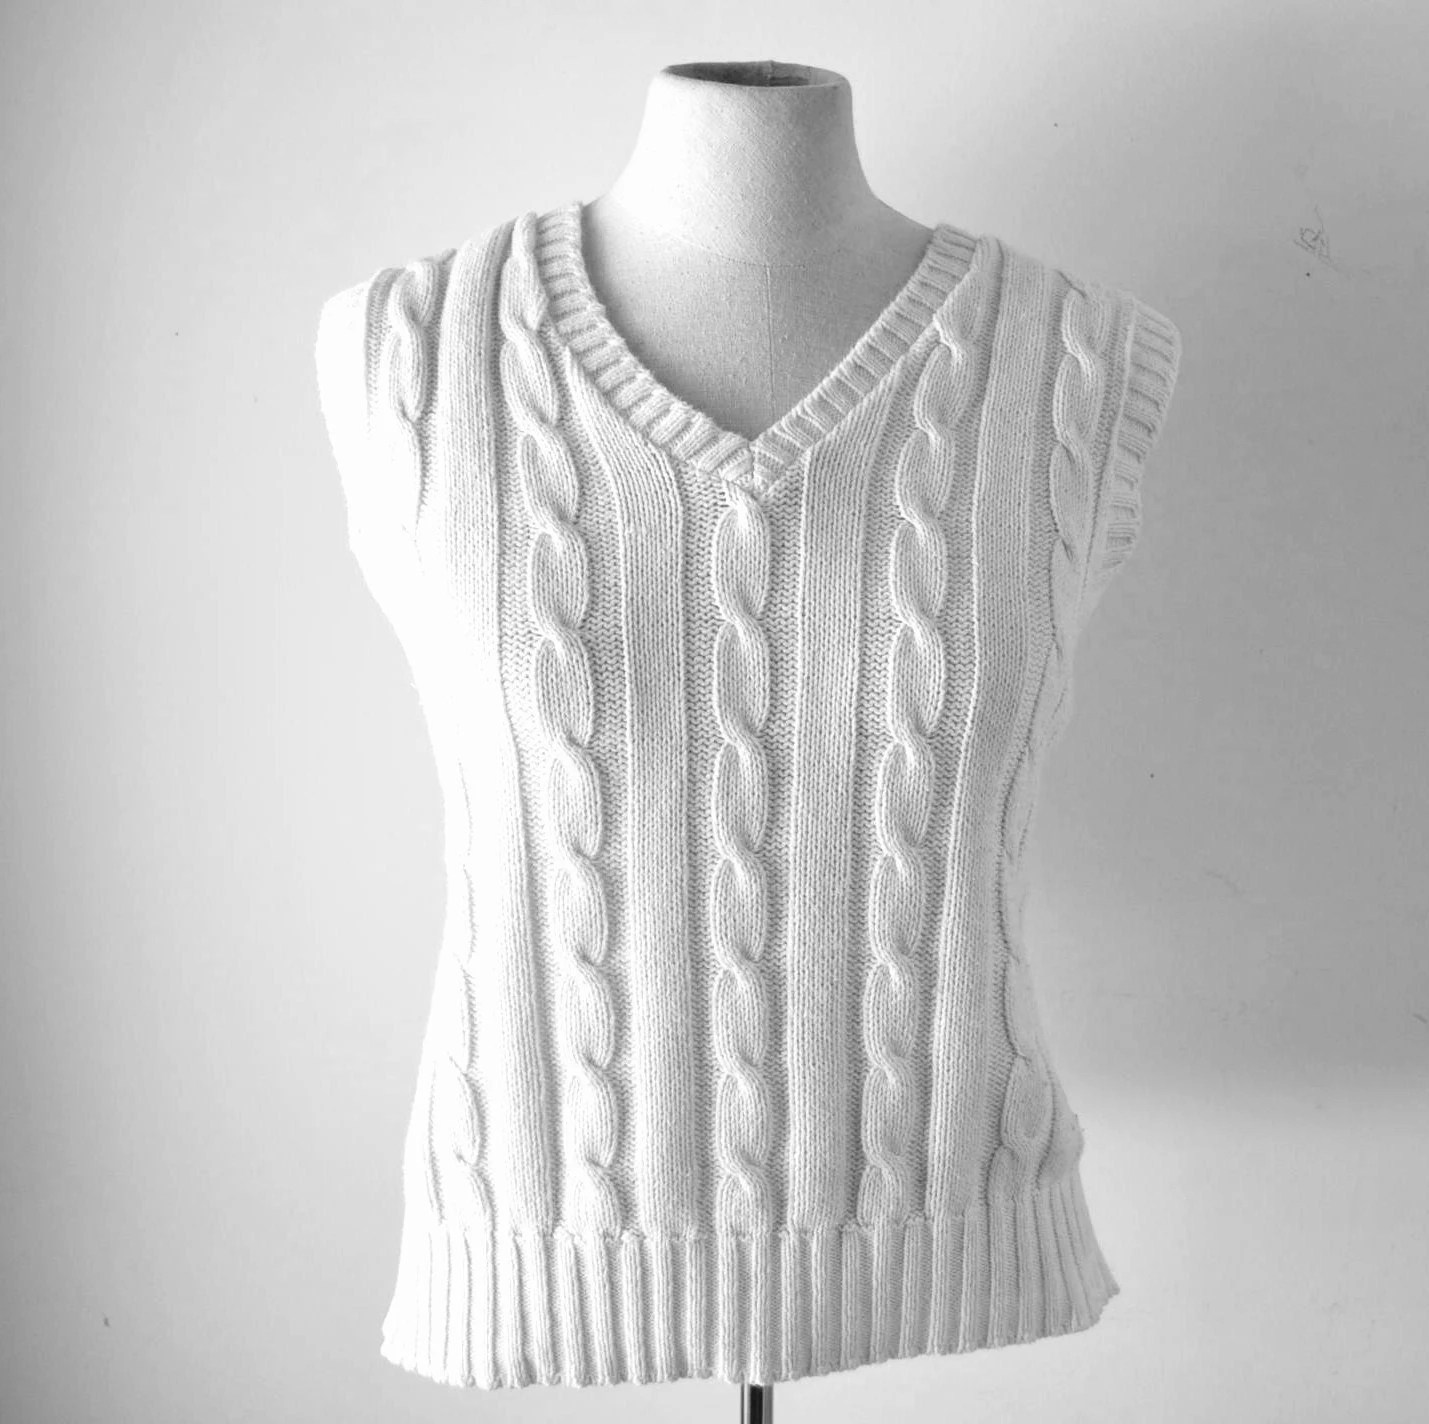 vintage unisex 1970s prep school creamy white cotton cable knit sweater vest---treasury item..